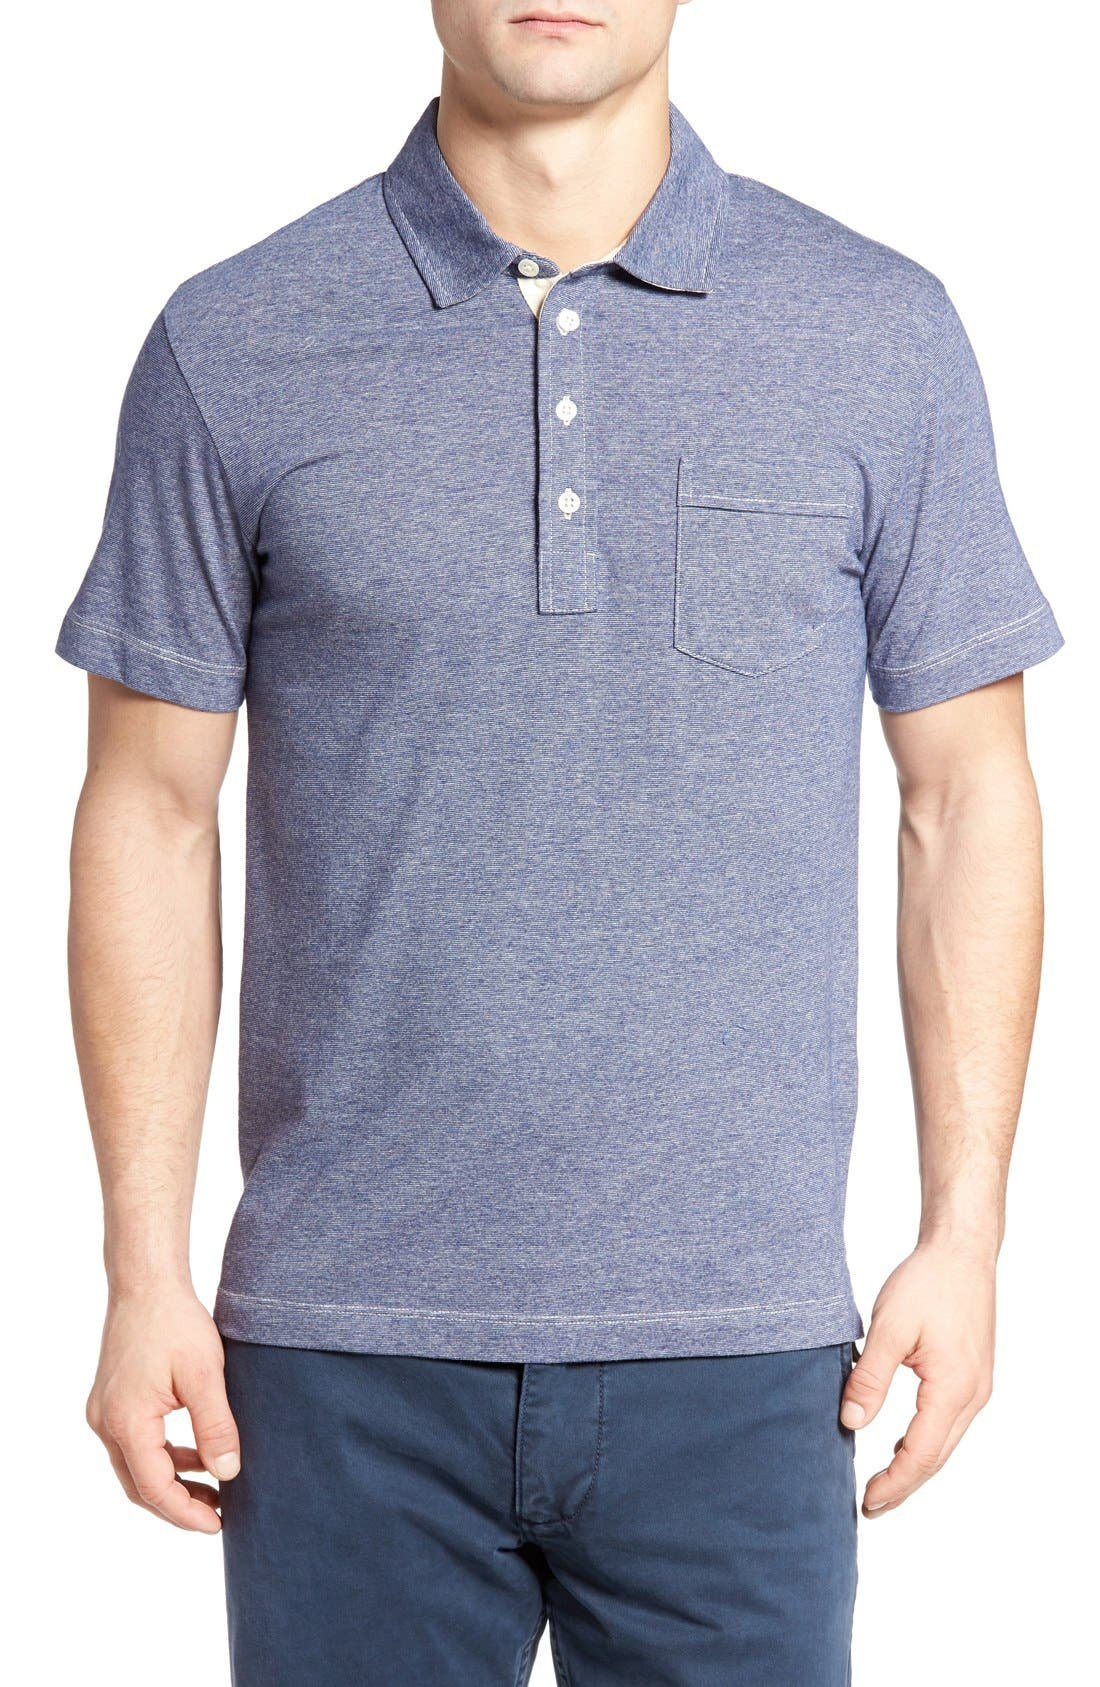 Alternate Image 1 Selected - Billy Reid 'Pensacola' Mini Stripe Slim Fit Jersey Polo